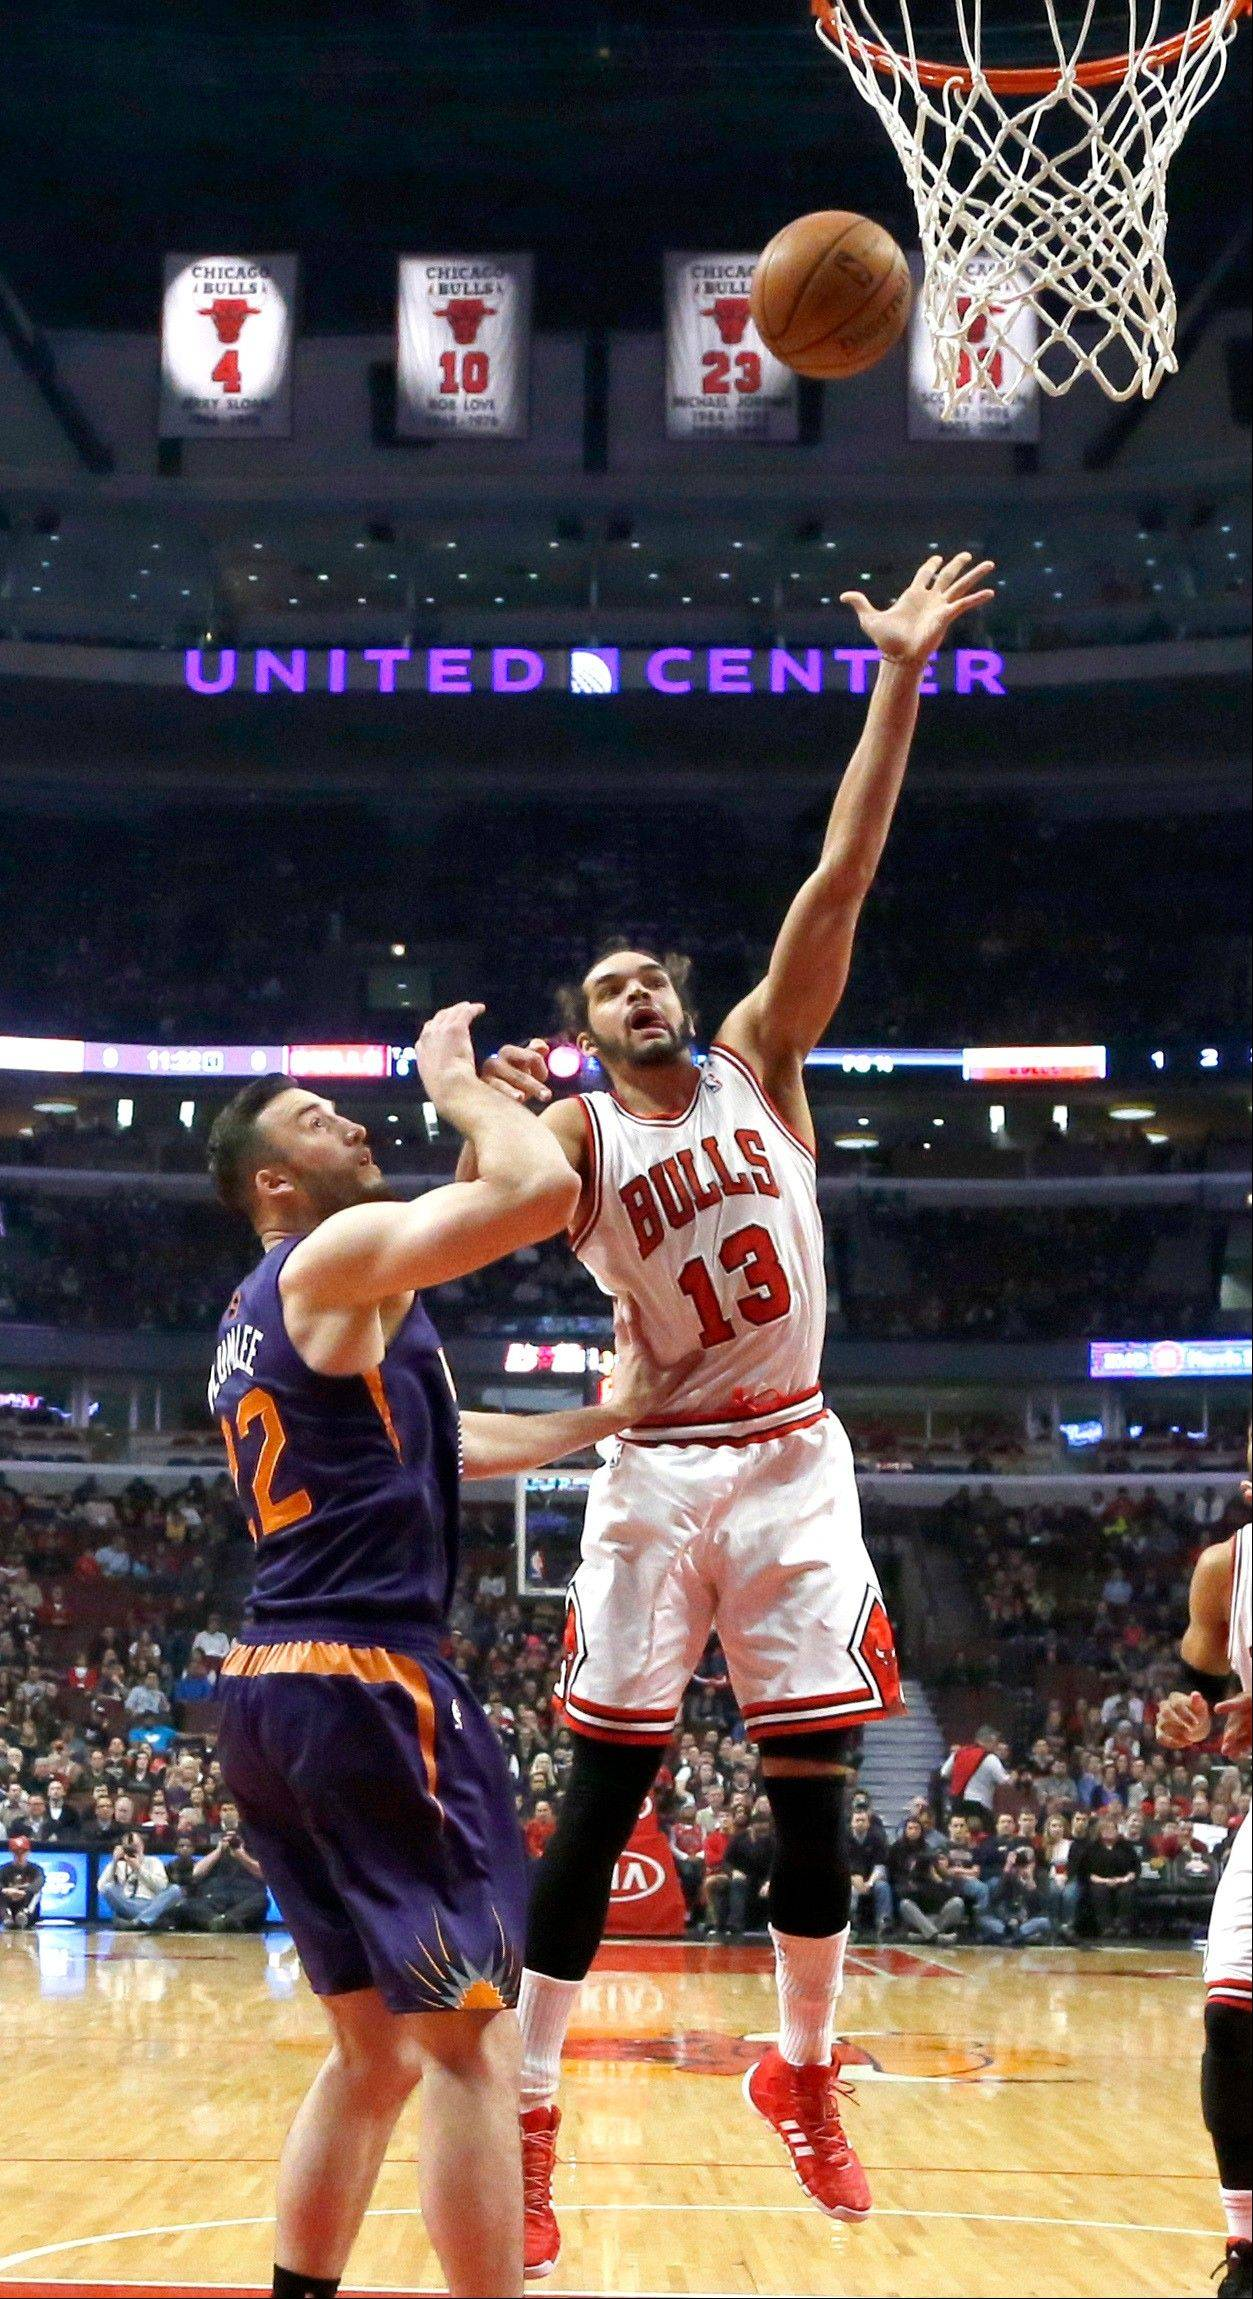 Chicago Bulls center Joakim Noah (13) shoots over Phoenix Suns center Miles Plumlee during the first half of an NBA basketball game, Tuesday, Jan. 7, 2014, in Chicago.